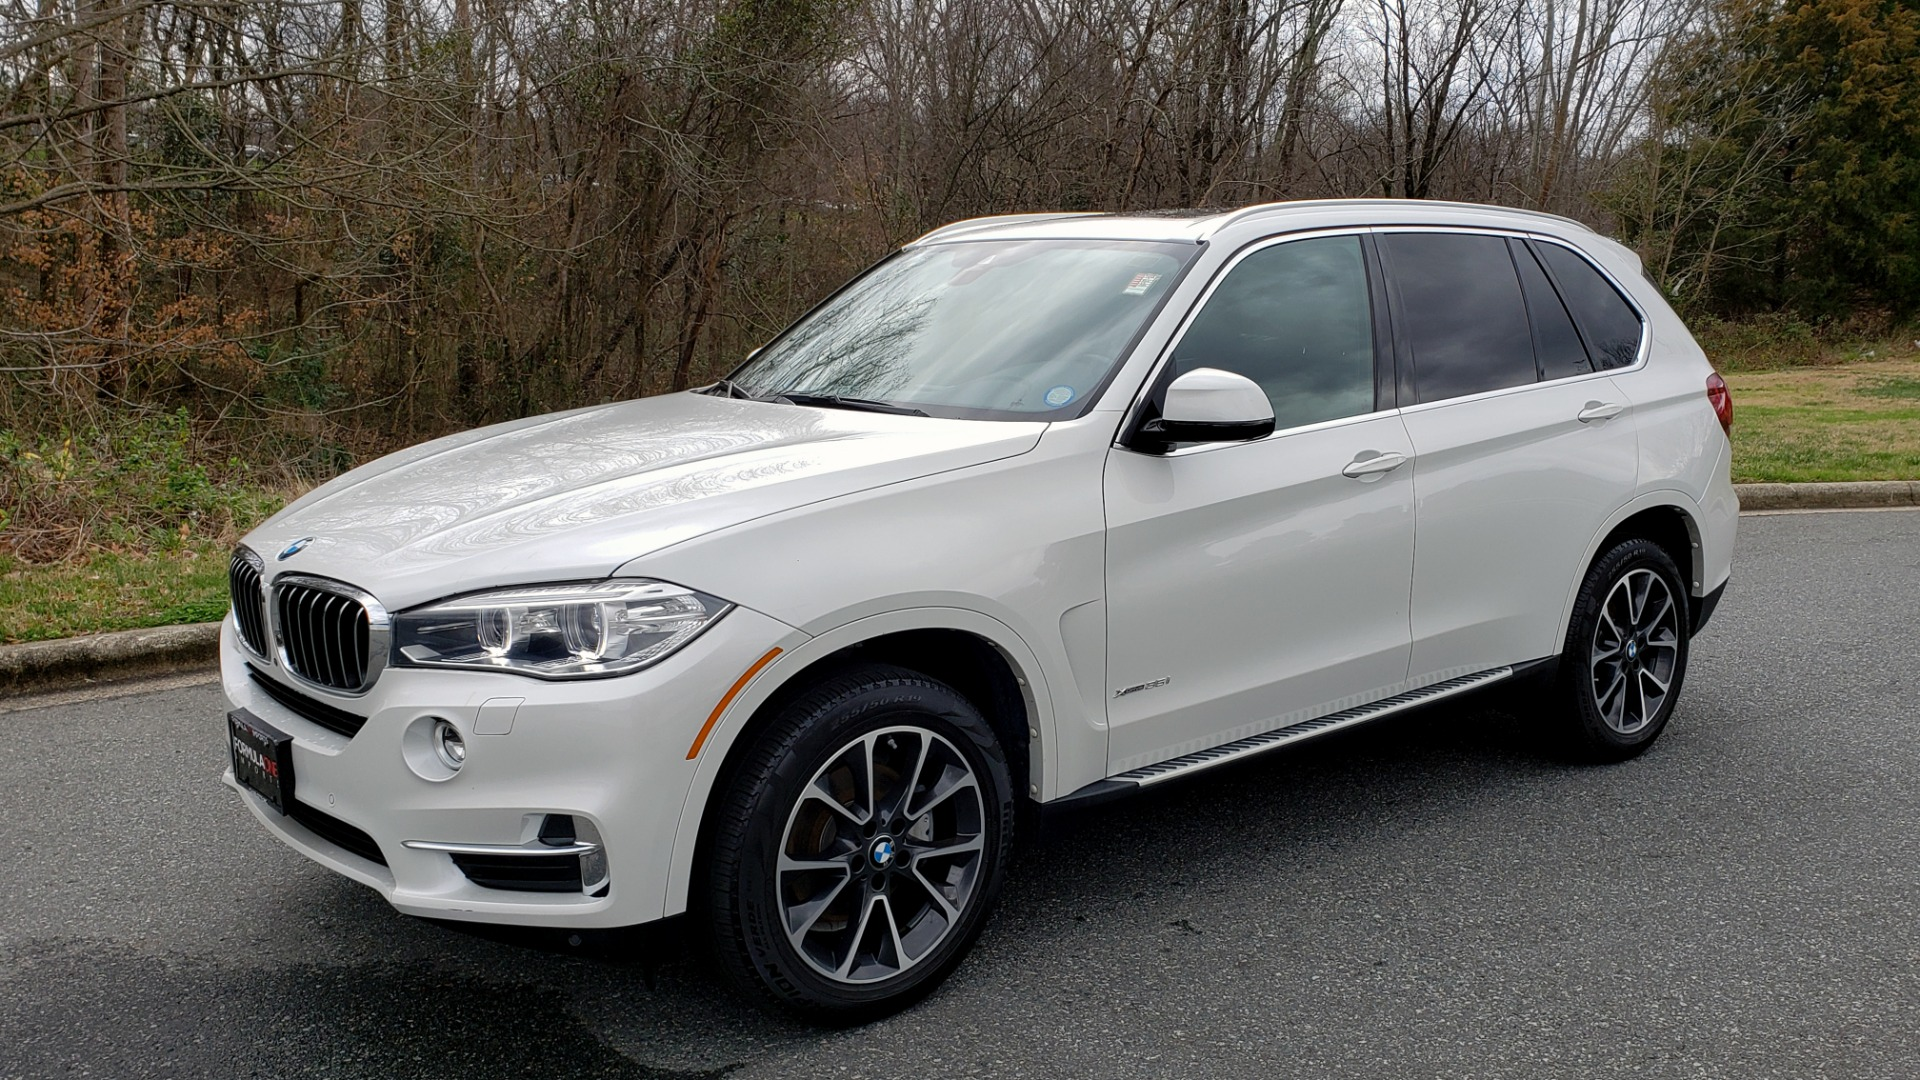 Used 2017 BMW X5 XDRIVE35I / NAV / HUD / DRVR ASST / SUNROOF / REARVIEW for sale Sold at Formula Imports in Charlotte NC 28227 1